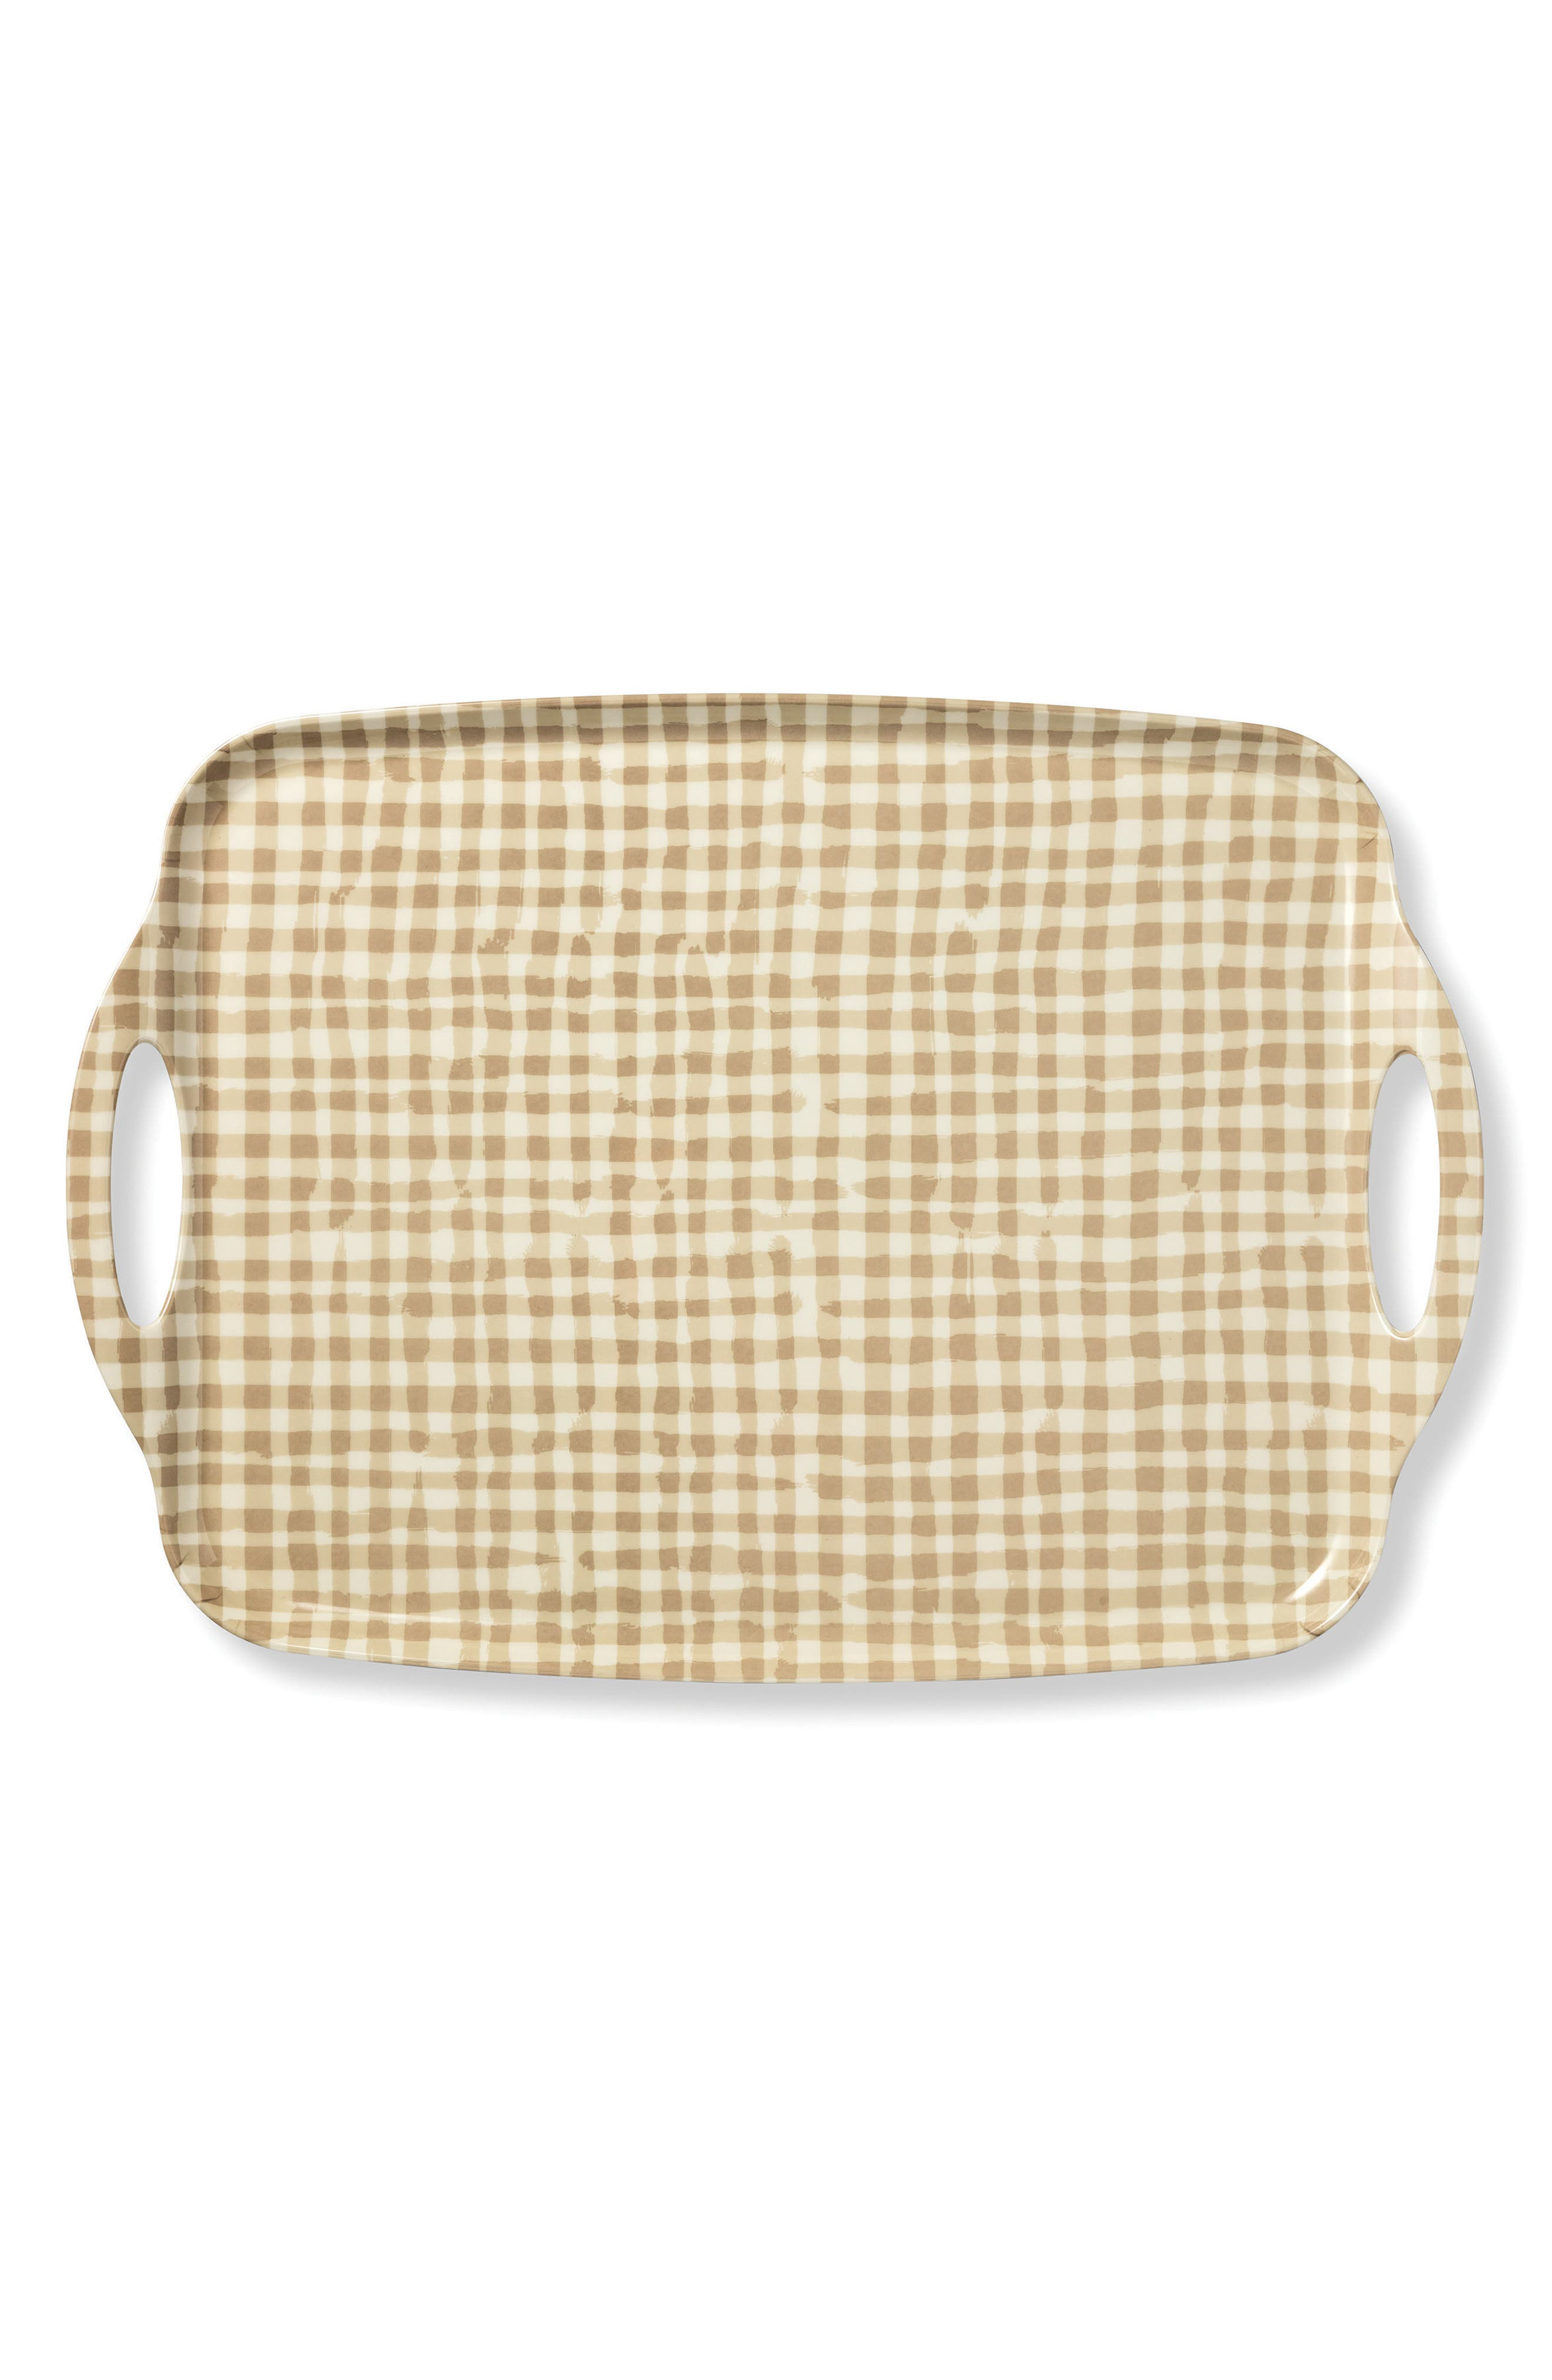 gingham serving tray,                         Main,                         color, 020